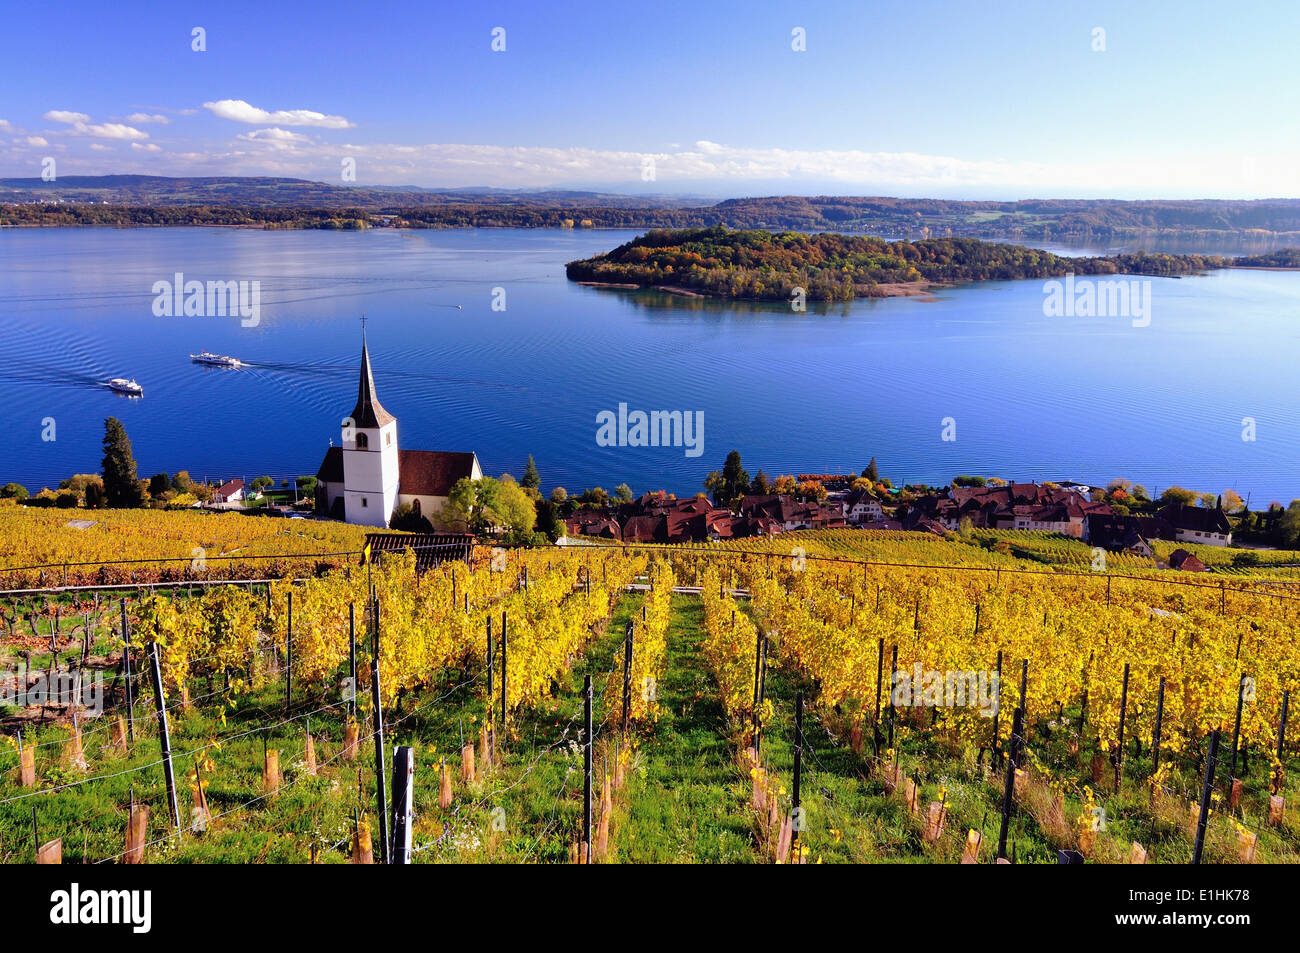 Lake Biel and vineyards in autumn, St. Peter's Island at the back, Ligerz, Canton of Bern, Switzerland - Stock Image